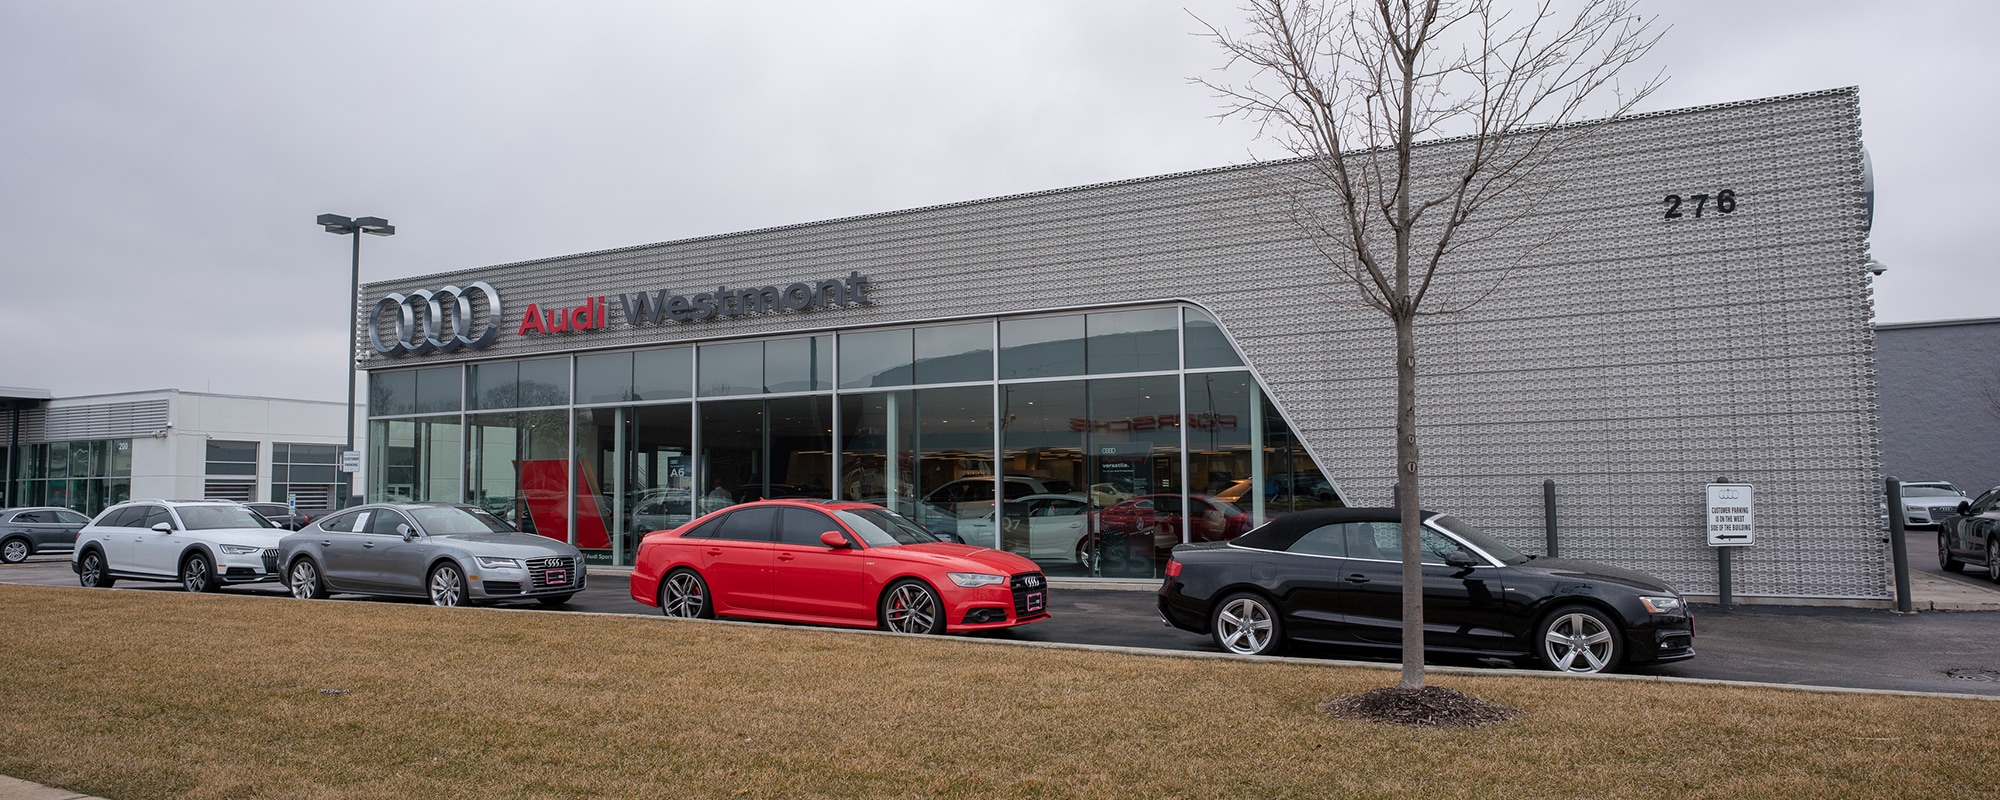 Outside view of Audi Westmont